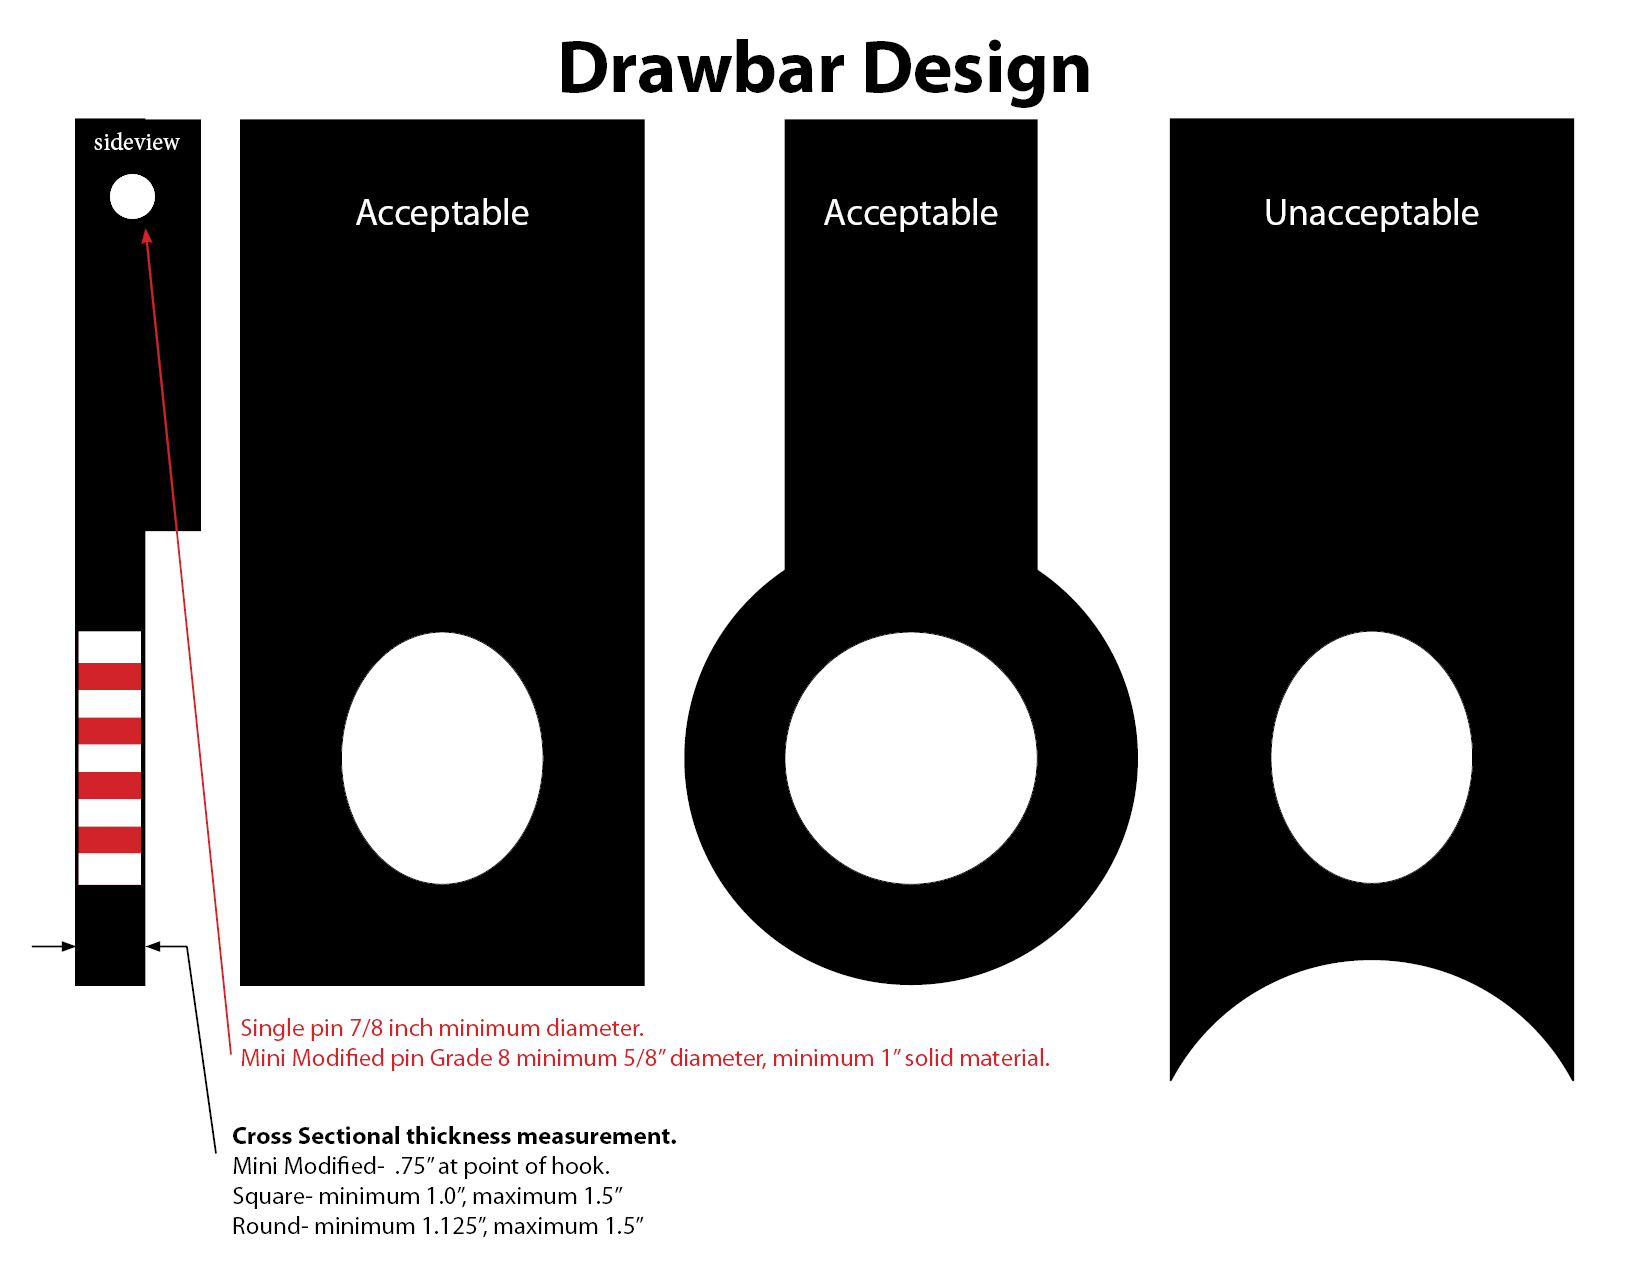 Drawbar Design